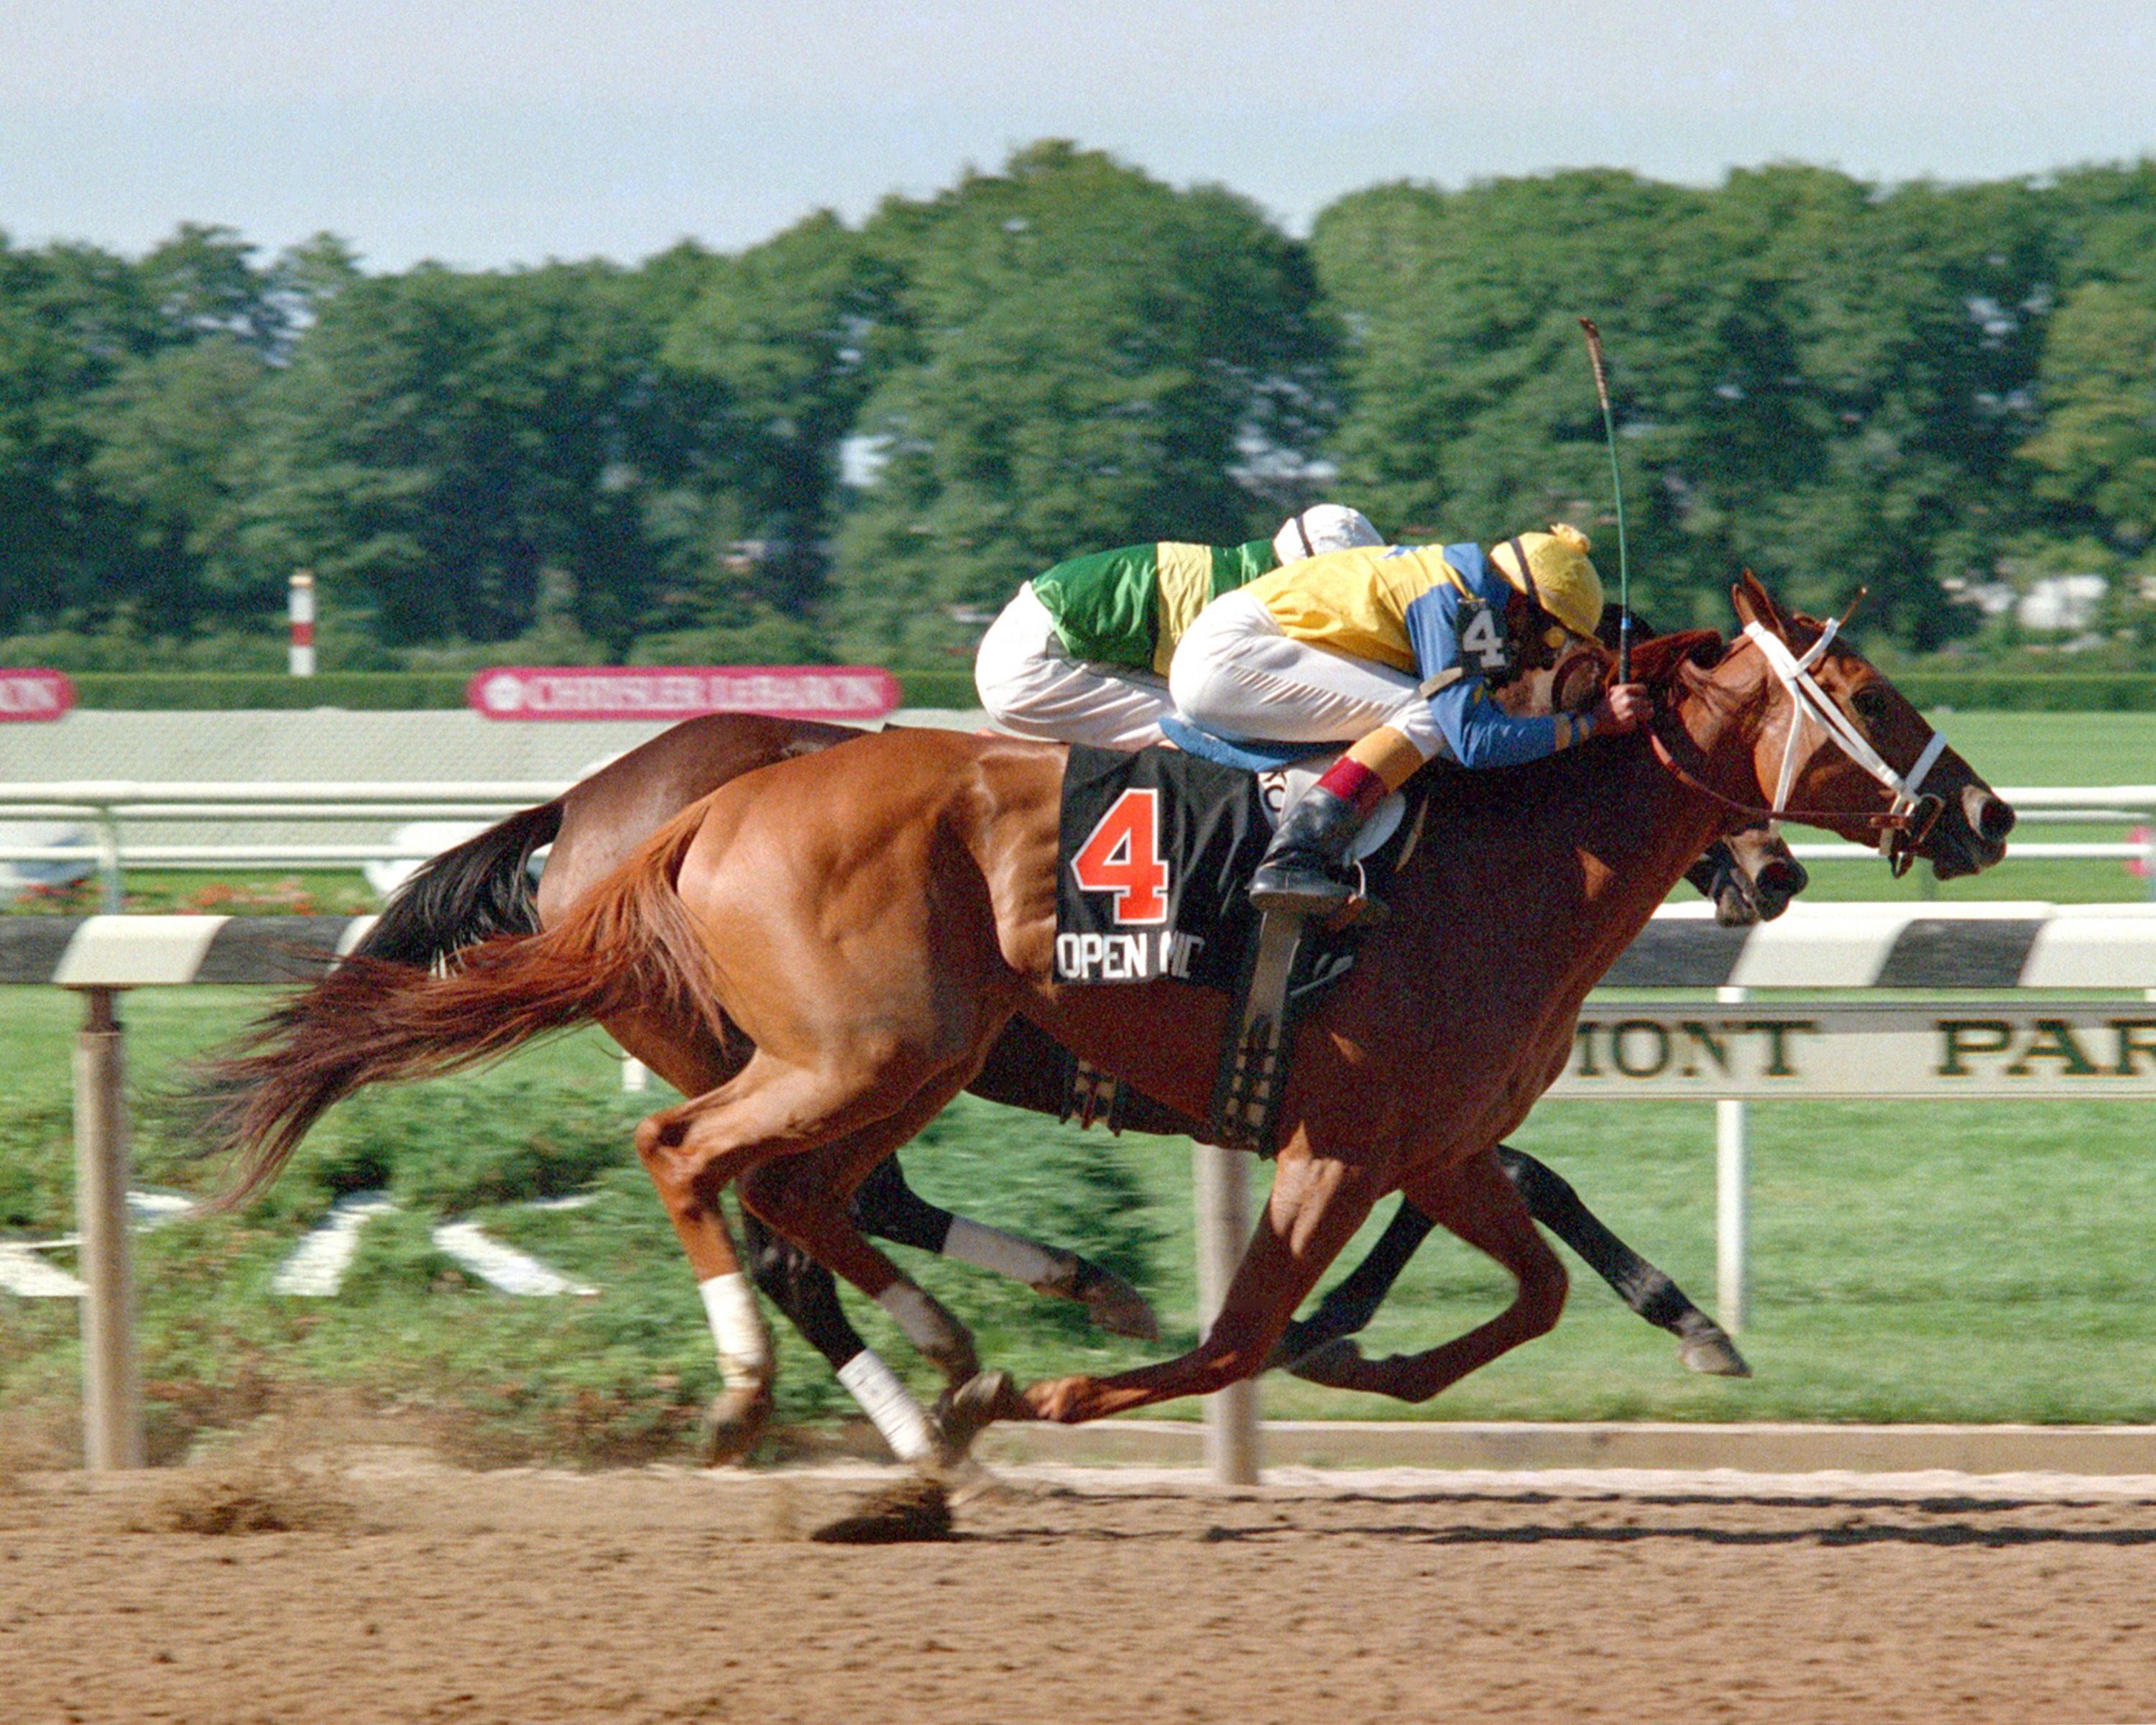 Open Mind. Won the Filly Triple Crown in 1989